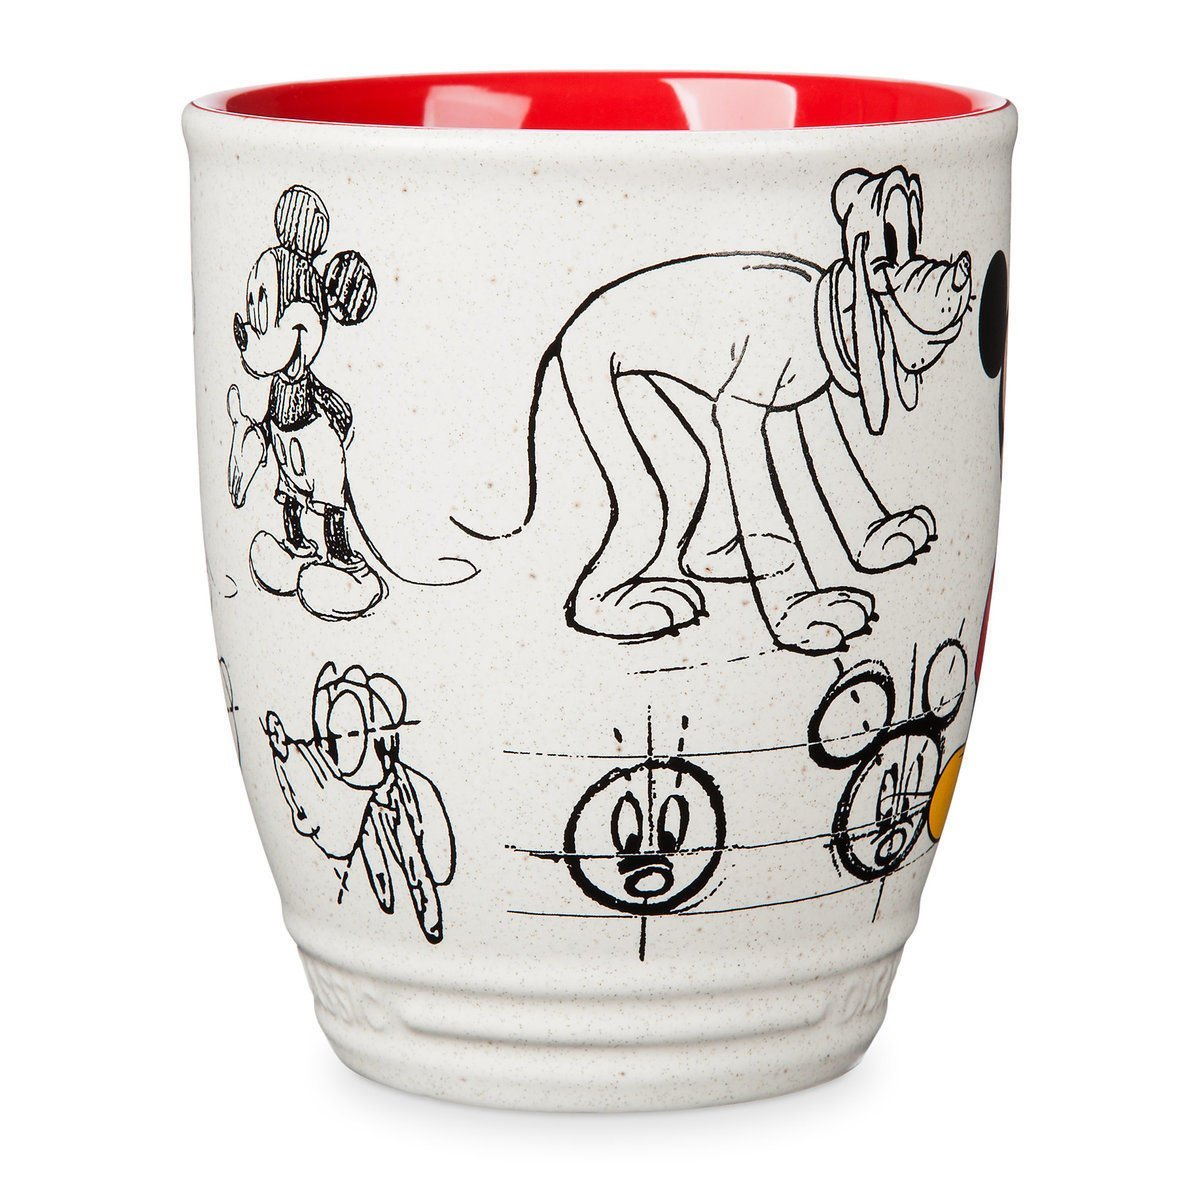 Mickey Mouse and Pluto Mug - Disney Classics Collection by Disneyland Paris (Image #3)